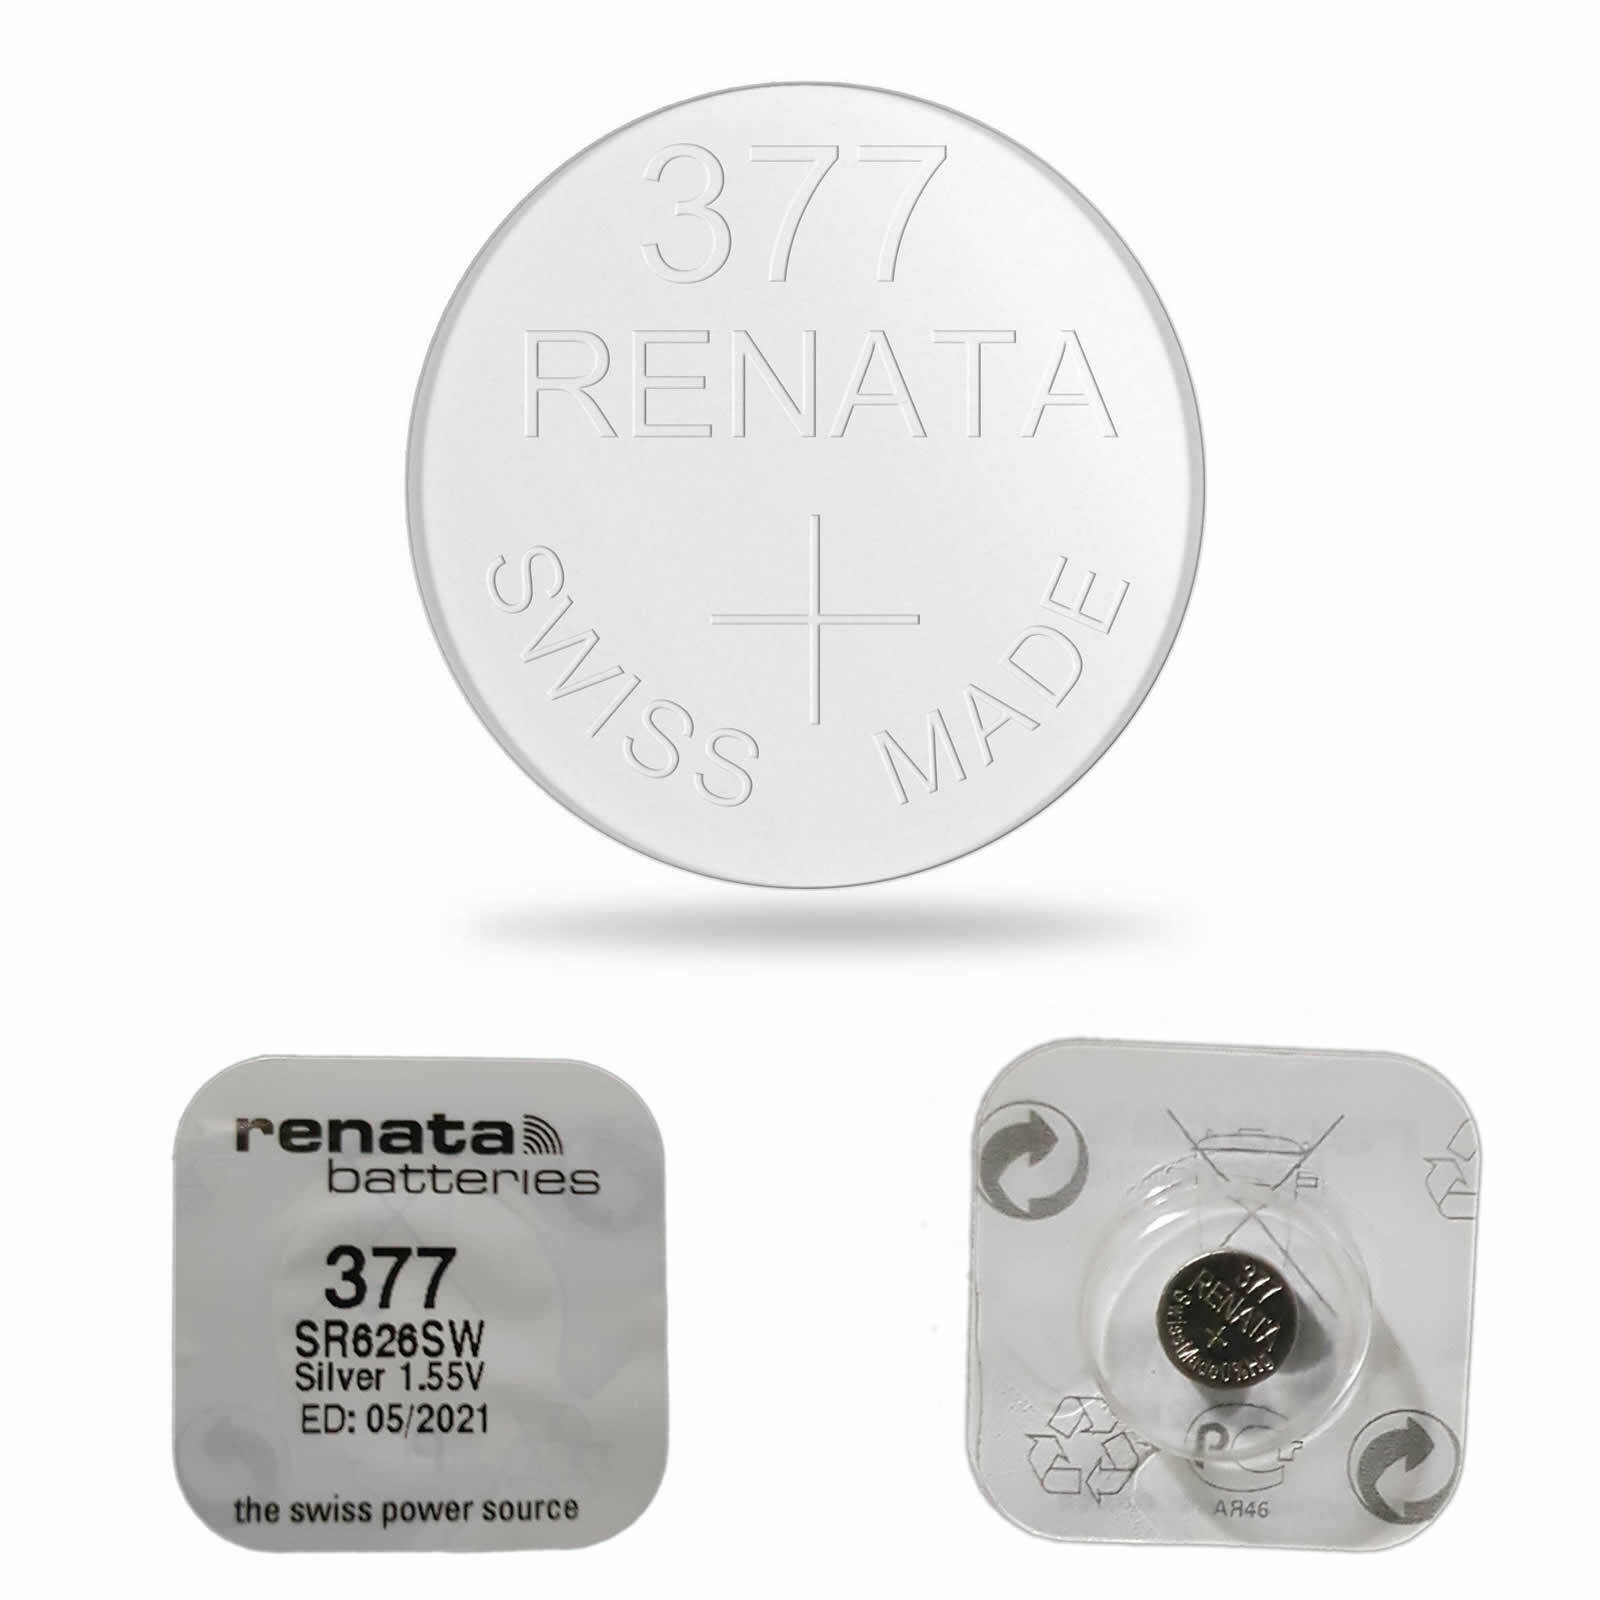 5 x RENATA 377 WATCH BATTERY SR626SW SWISS MADE SILVER OXIDE 1.55V MERCURY FREE | Watch Batteries